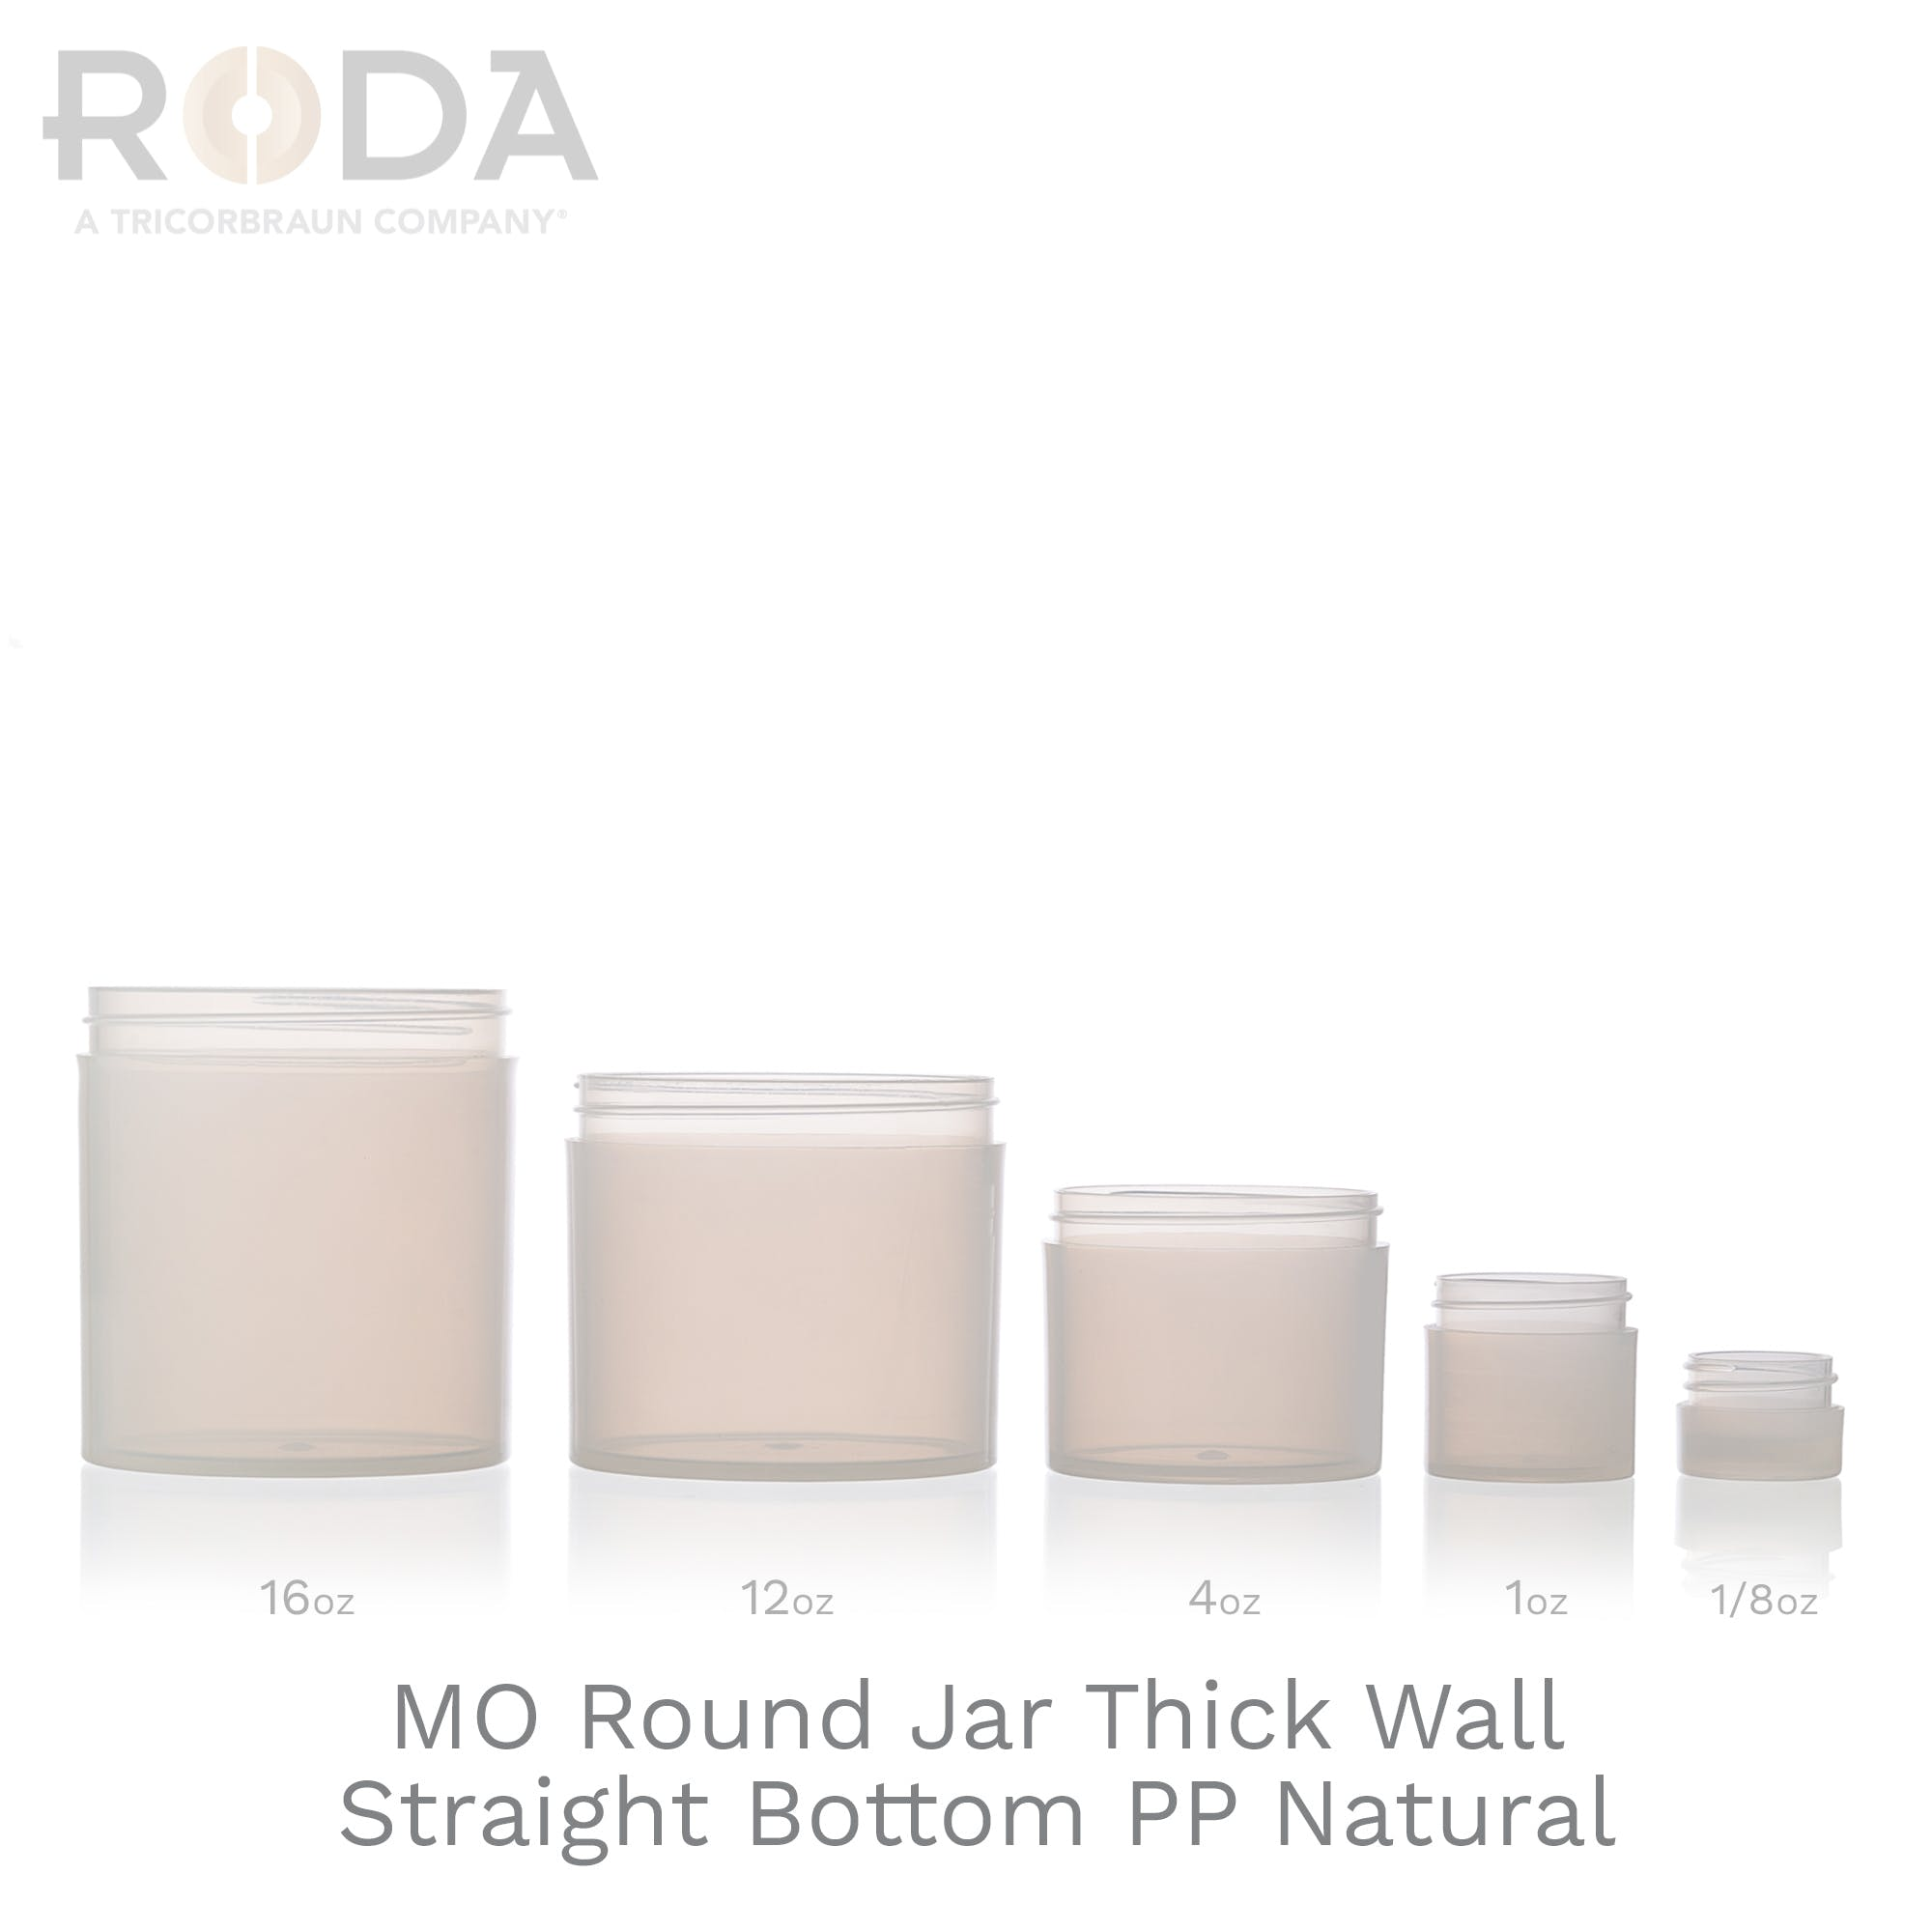 MO Round Jar Thick Wall Straight Bottom PP Natural